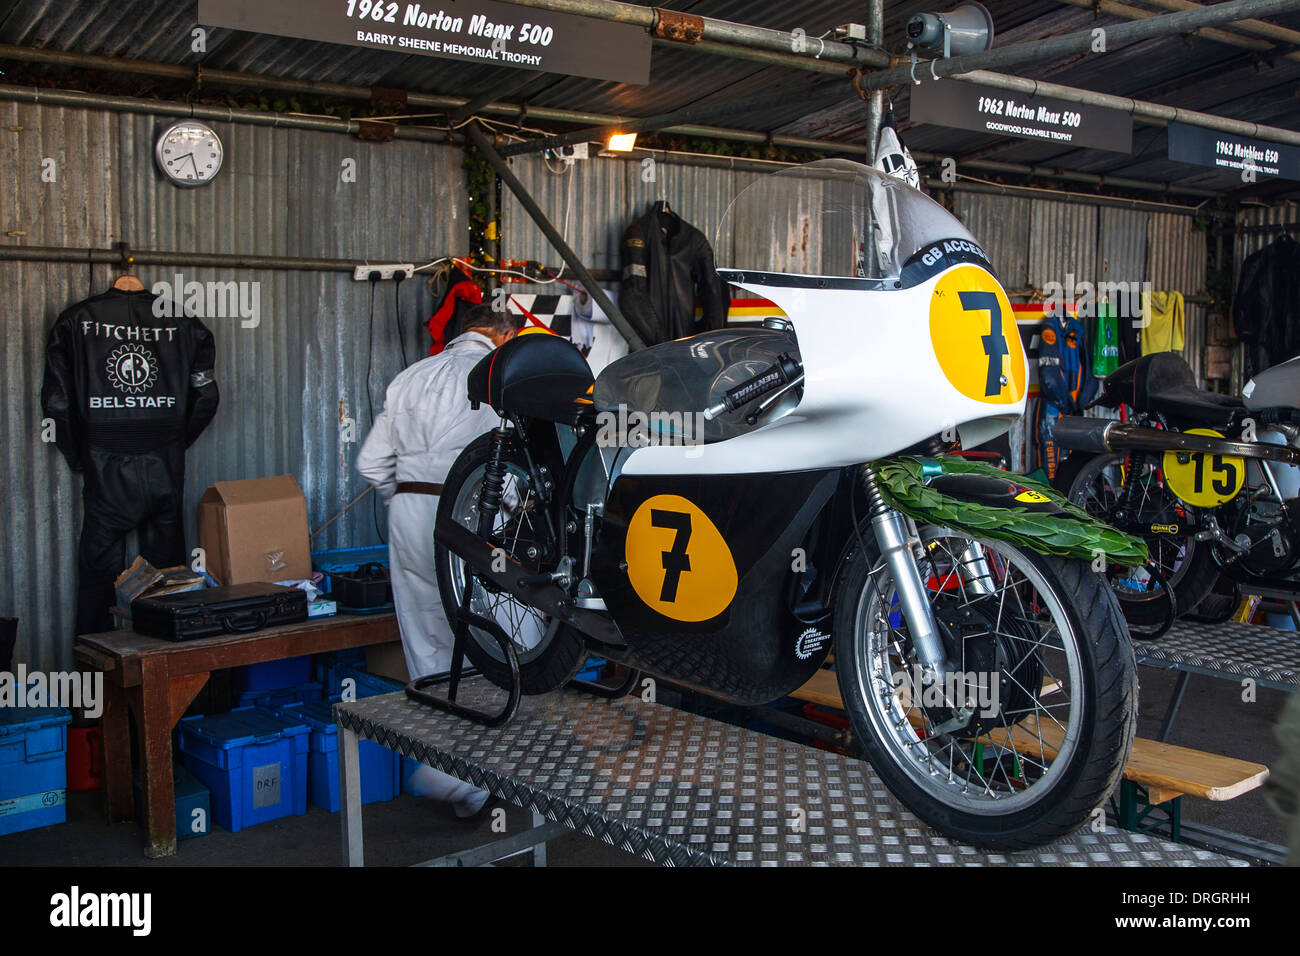 1962 Norton Manx 500 Motorrad bei dem Goodwood Revival 2013, West Sussex, UK Stockbild